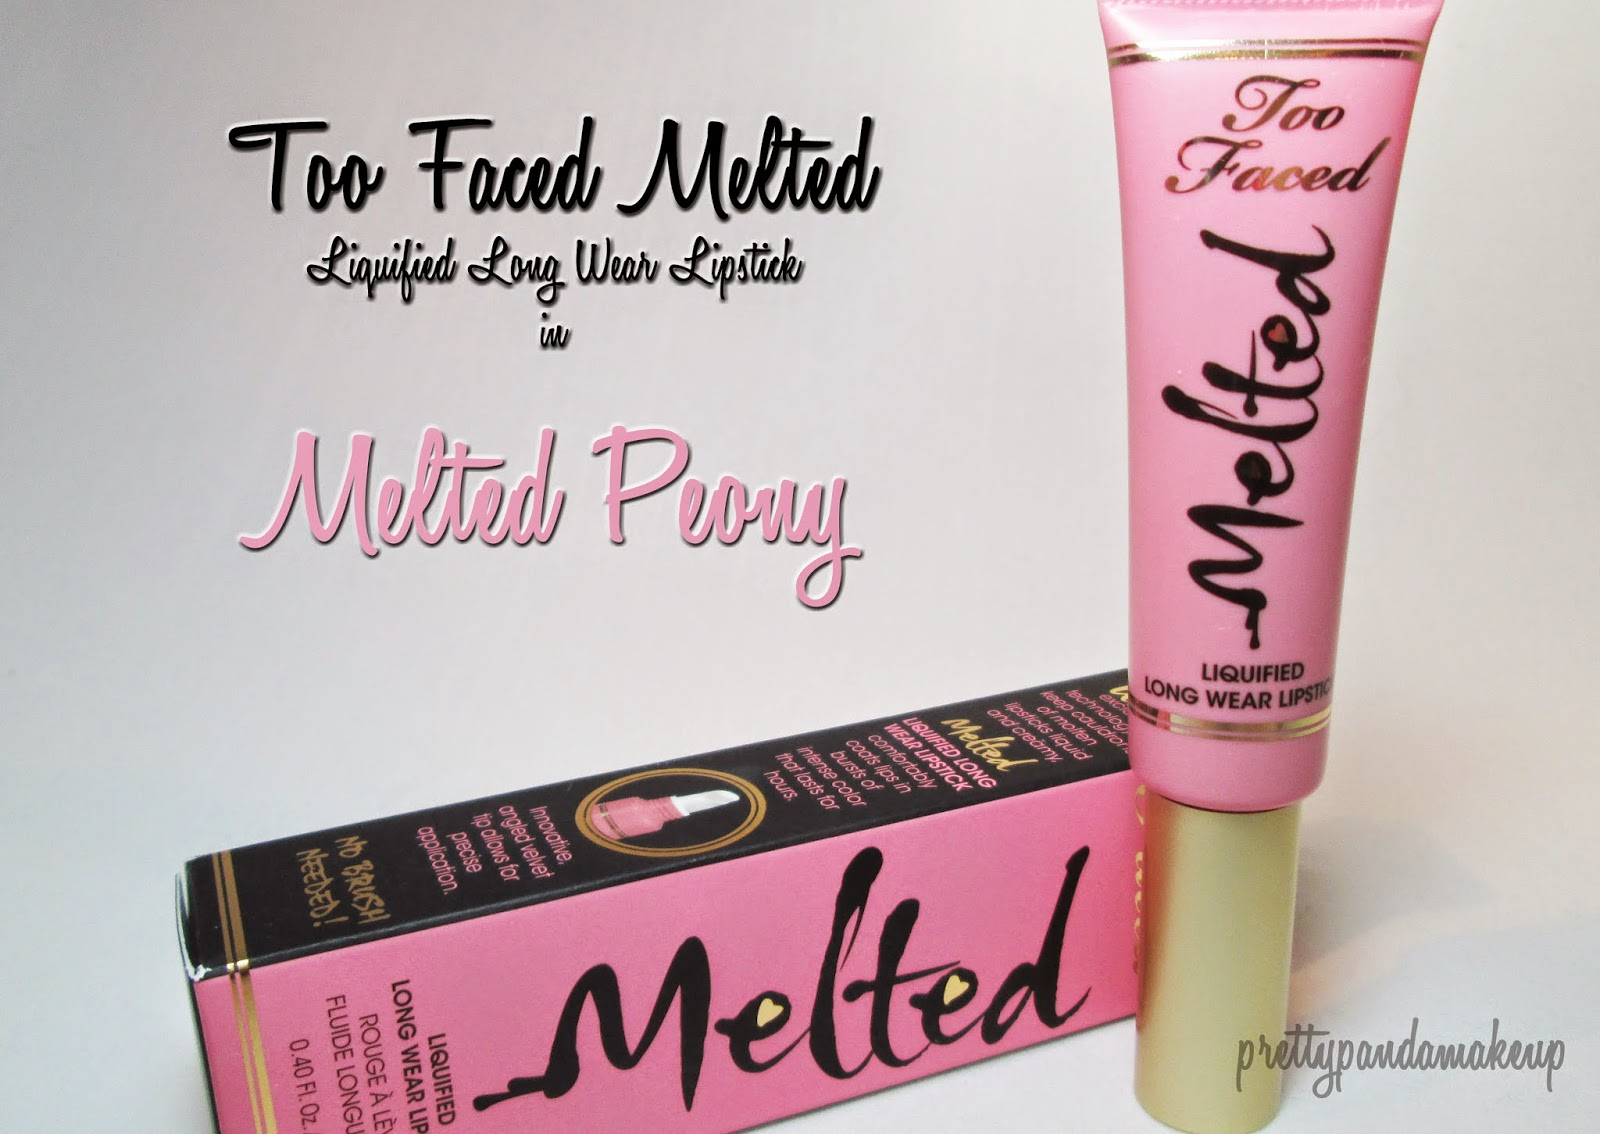 Too Faced Melted liquid lipstick in Melted Peony